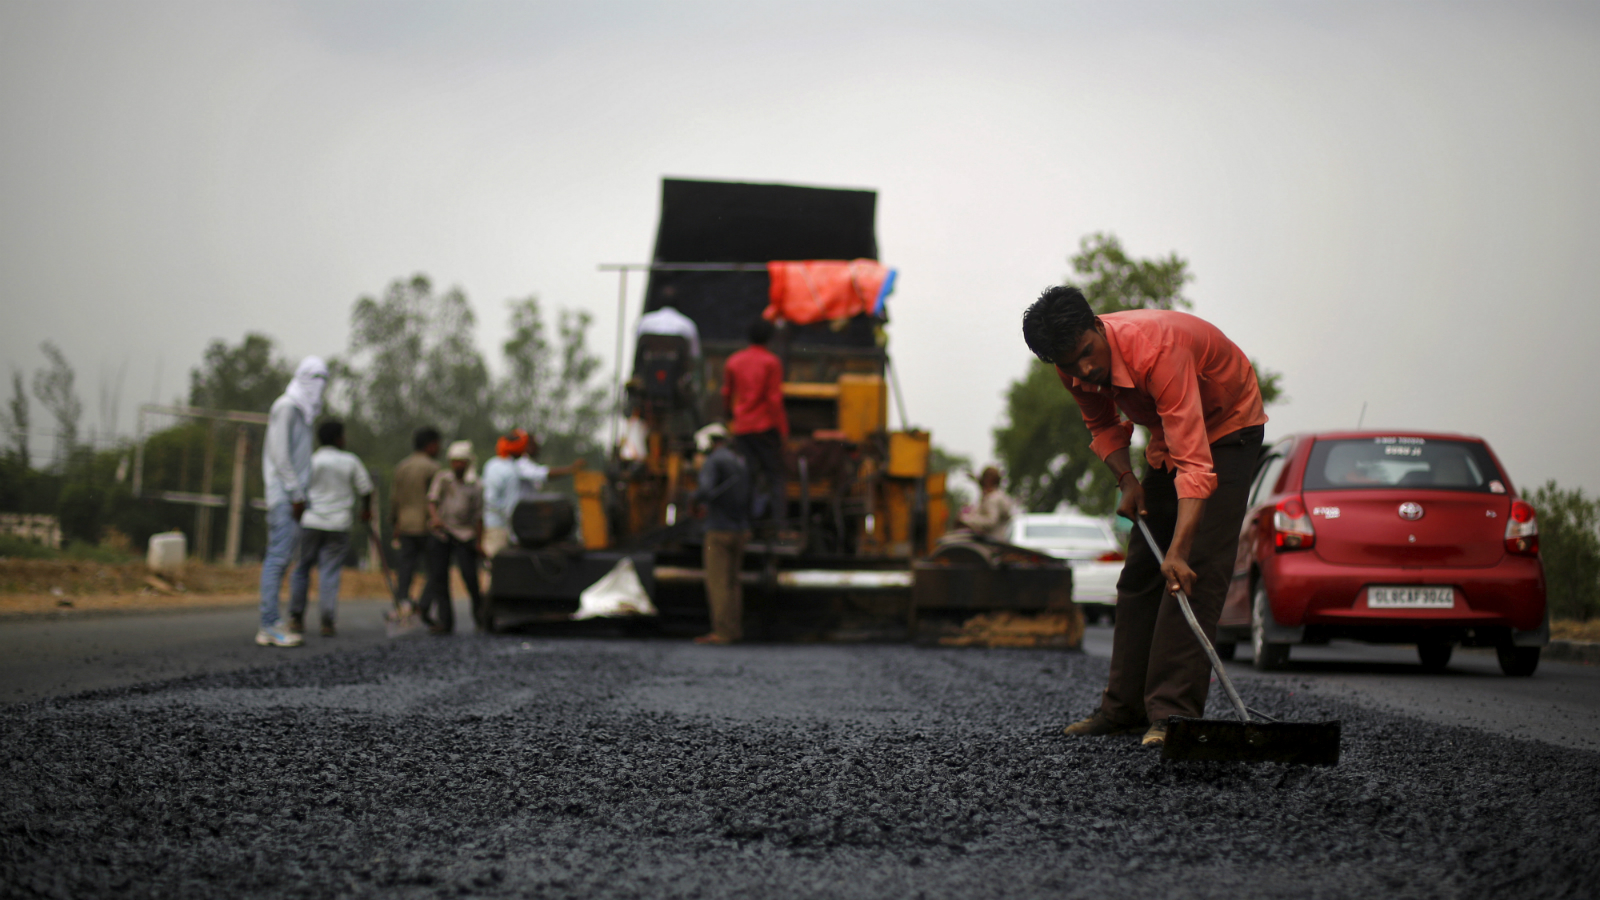 A labourer works at the construction site of the Delhi-Jaipur national highway in Manesar in the northern state of Haryana, India, July 9, 2015. To match insight INDIA-INFRASCTRUCTURE/